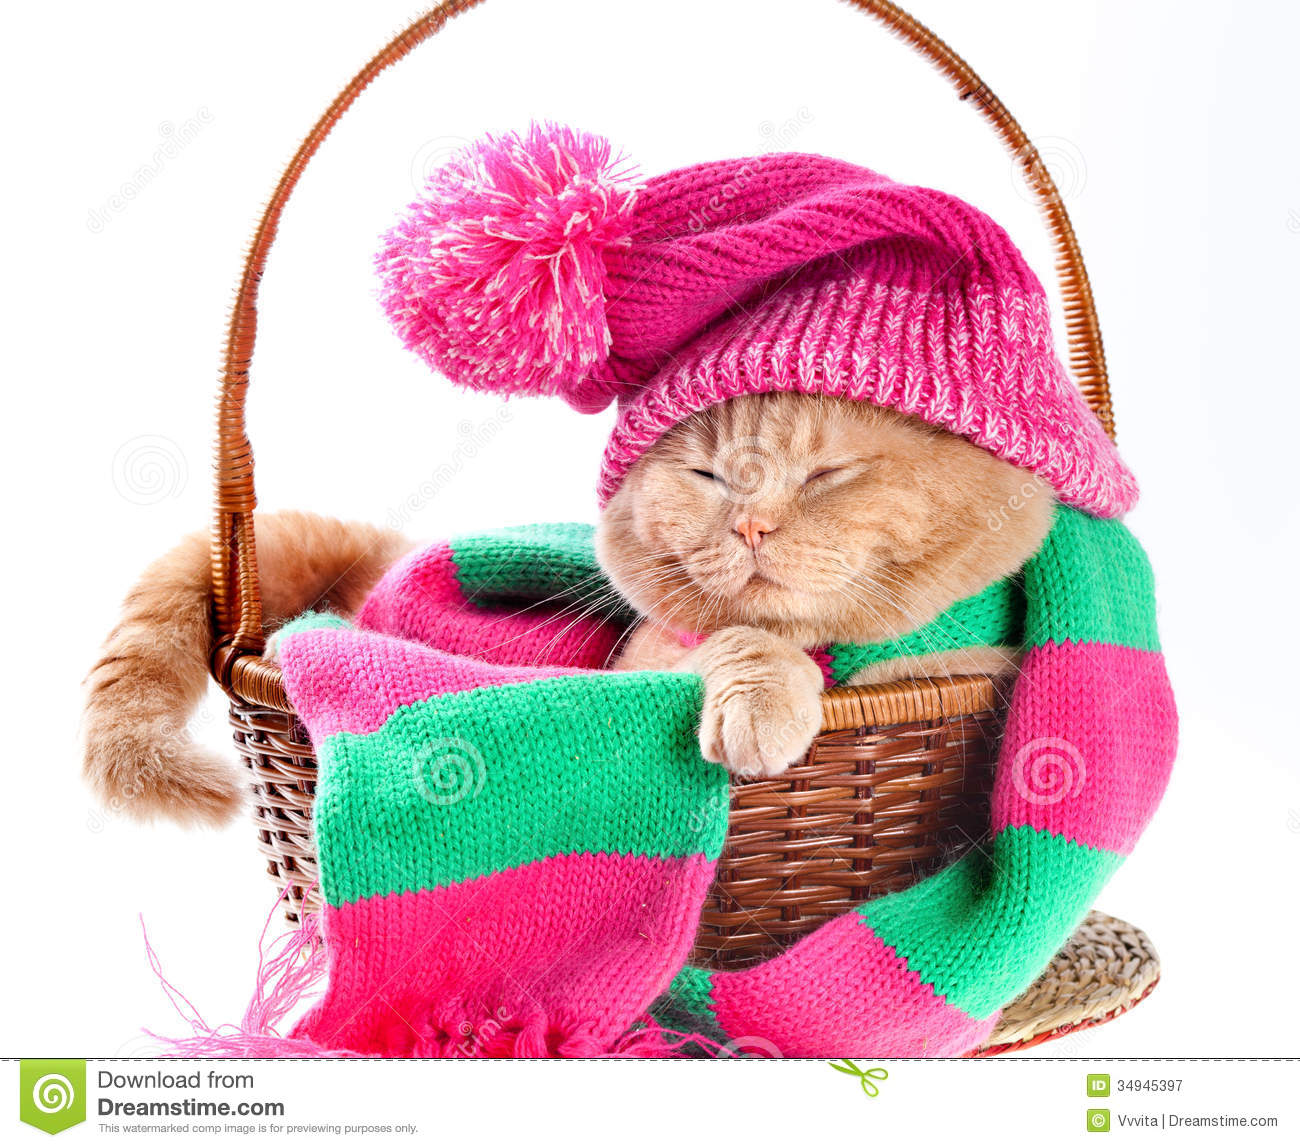 Cat wearing a pink knitting hat with pompom and a scarf